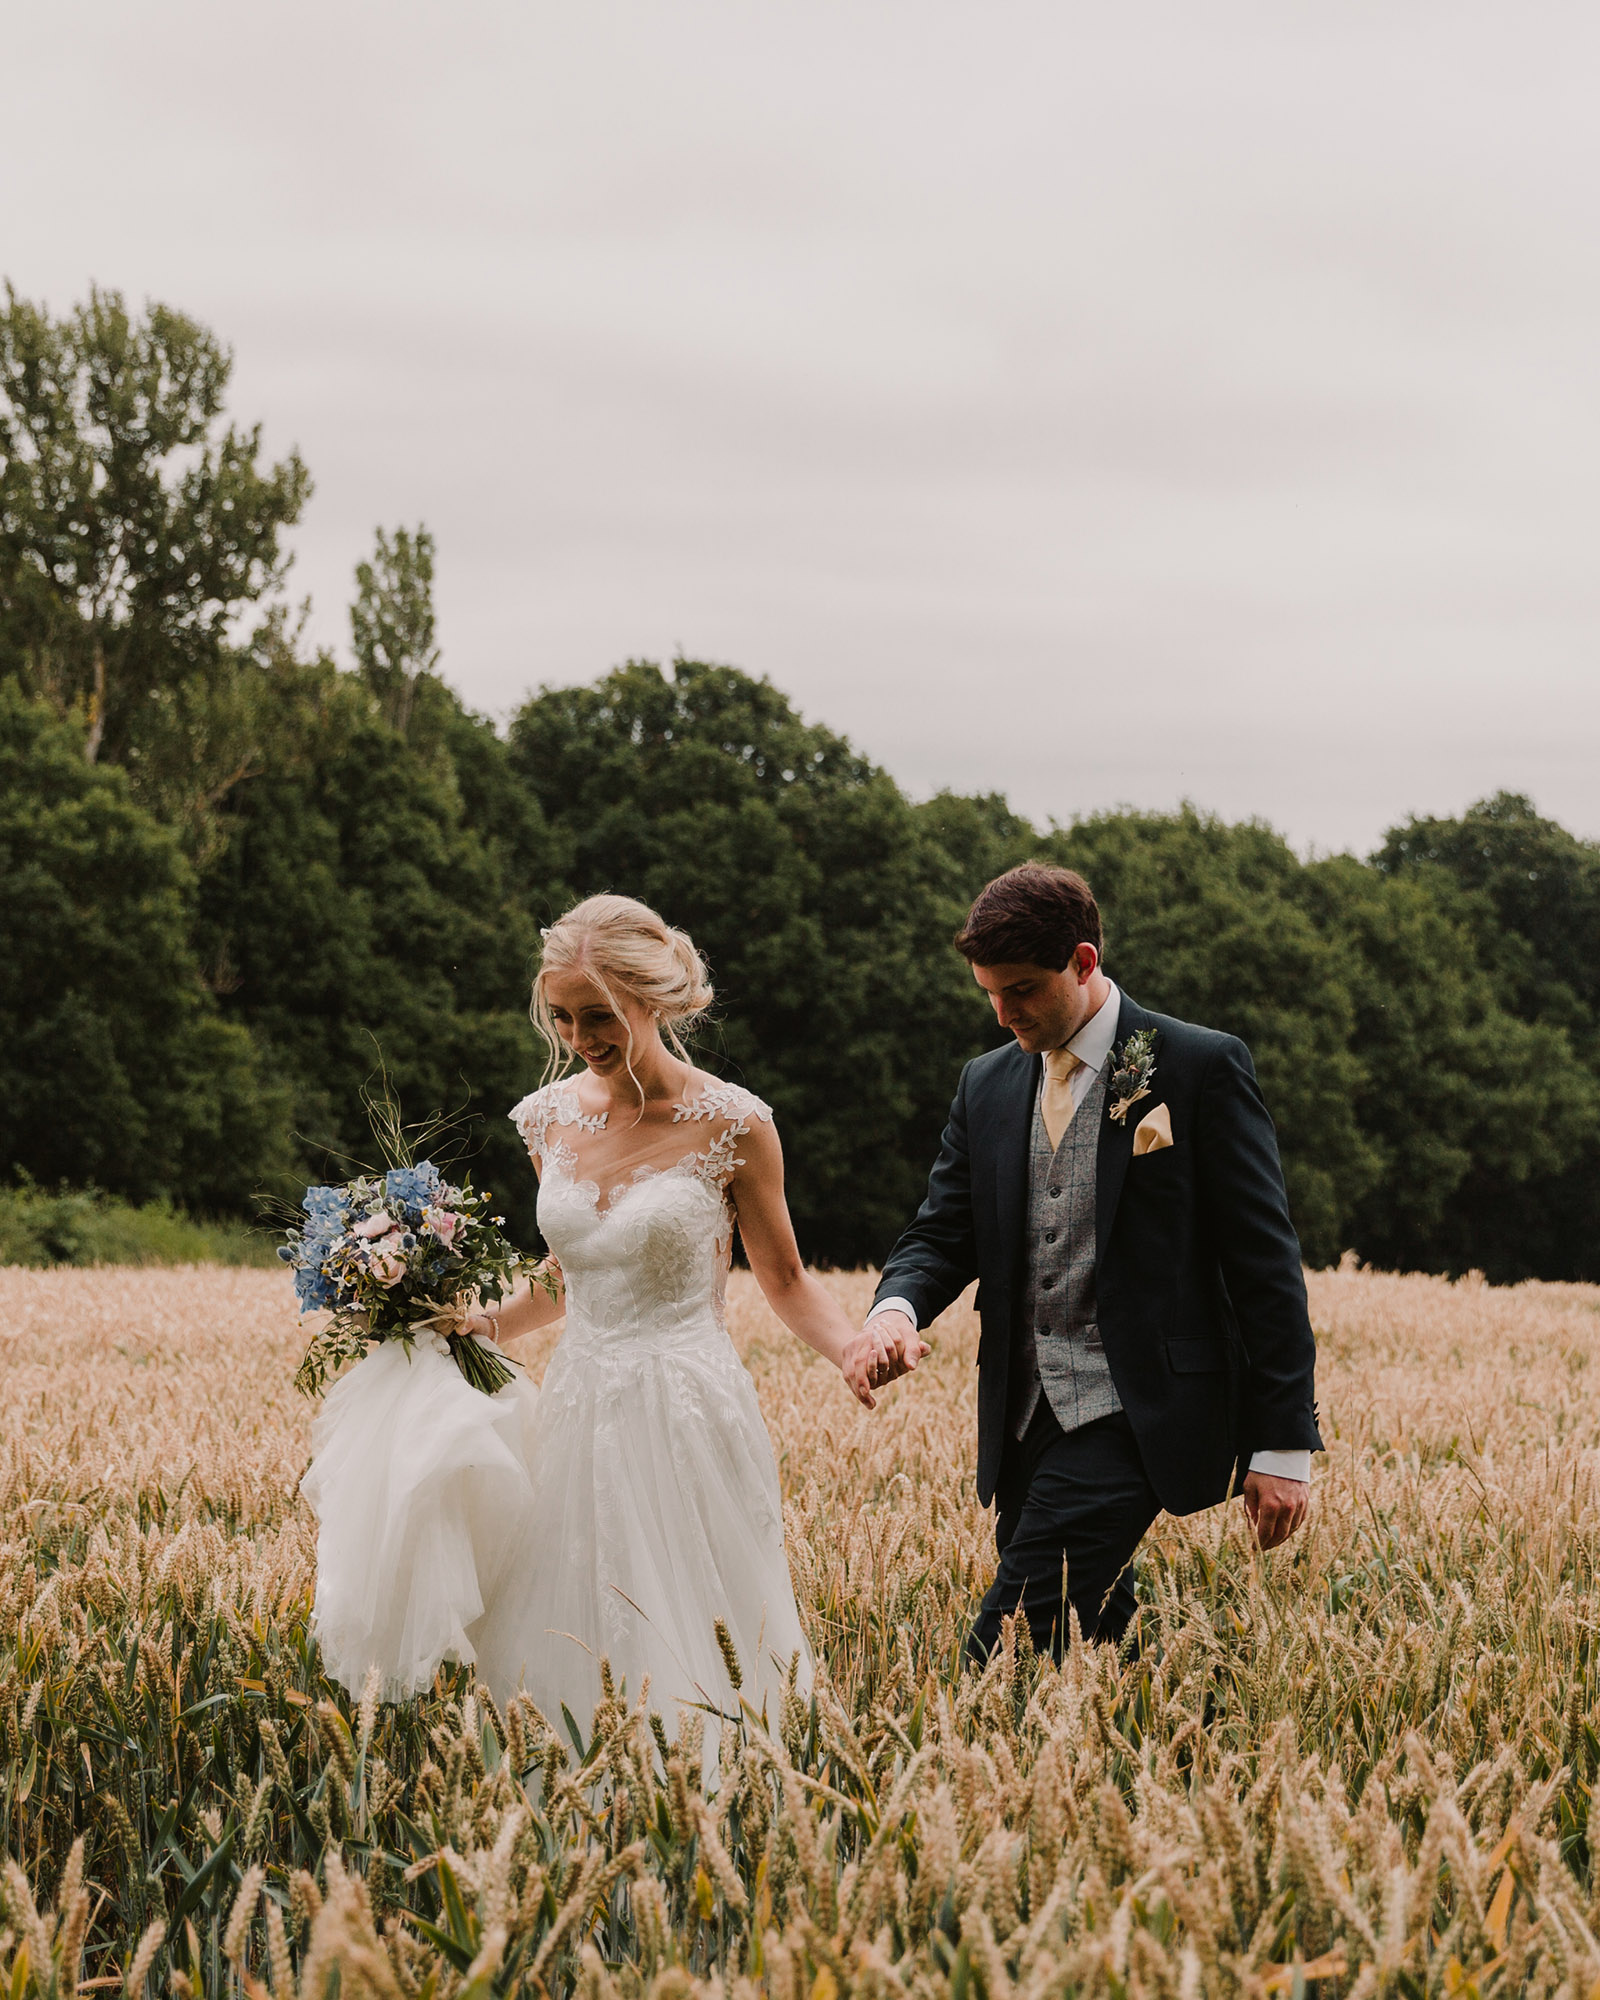 Beautiful Wedding Couple walking through a field